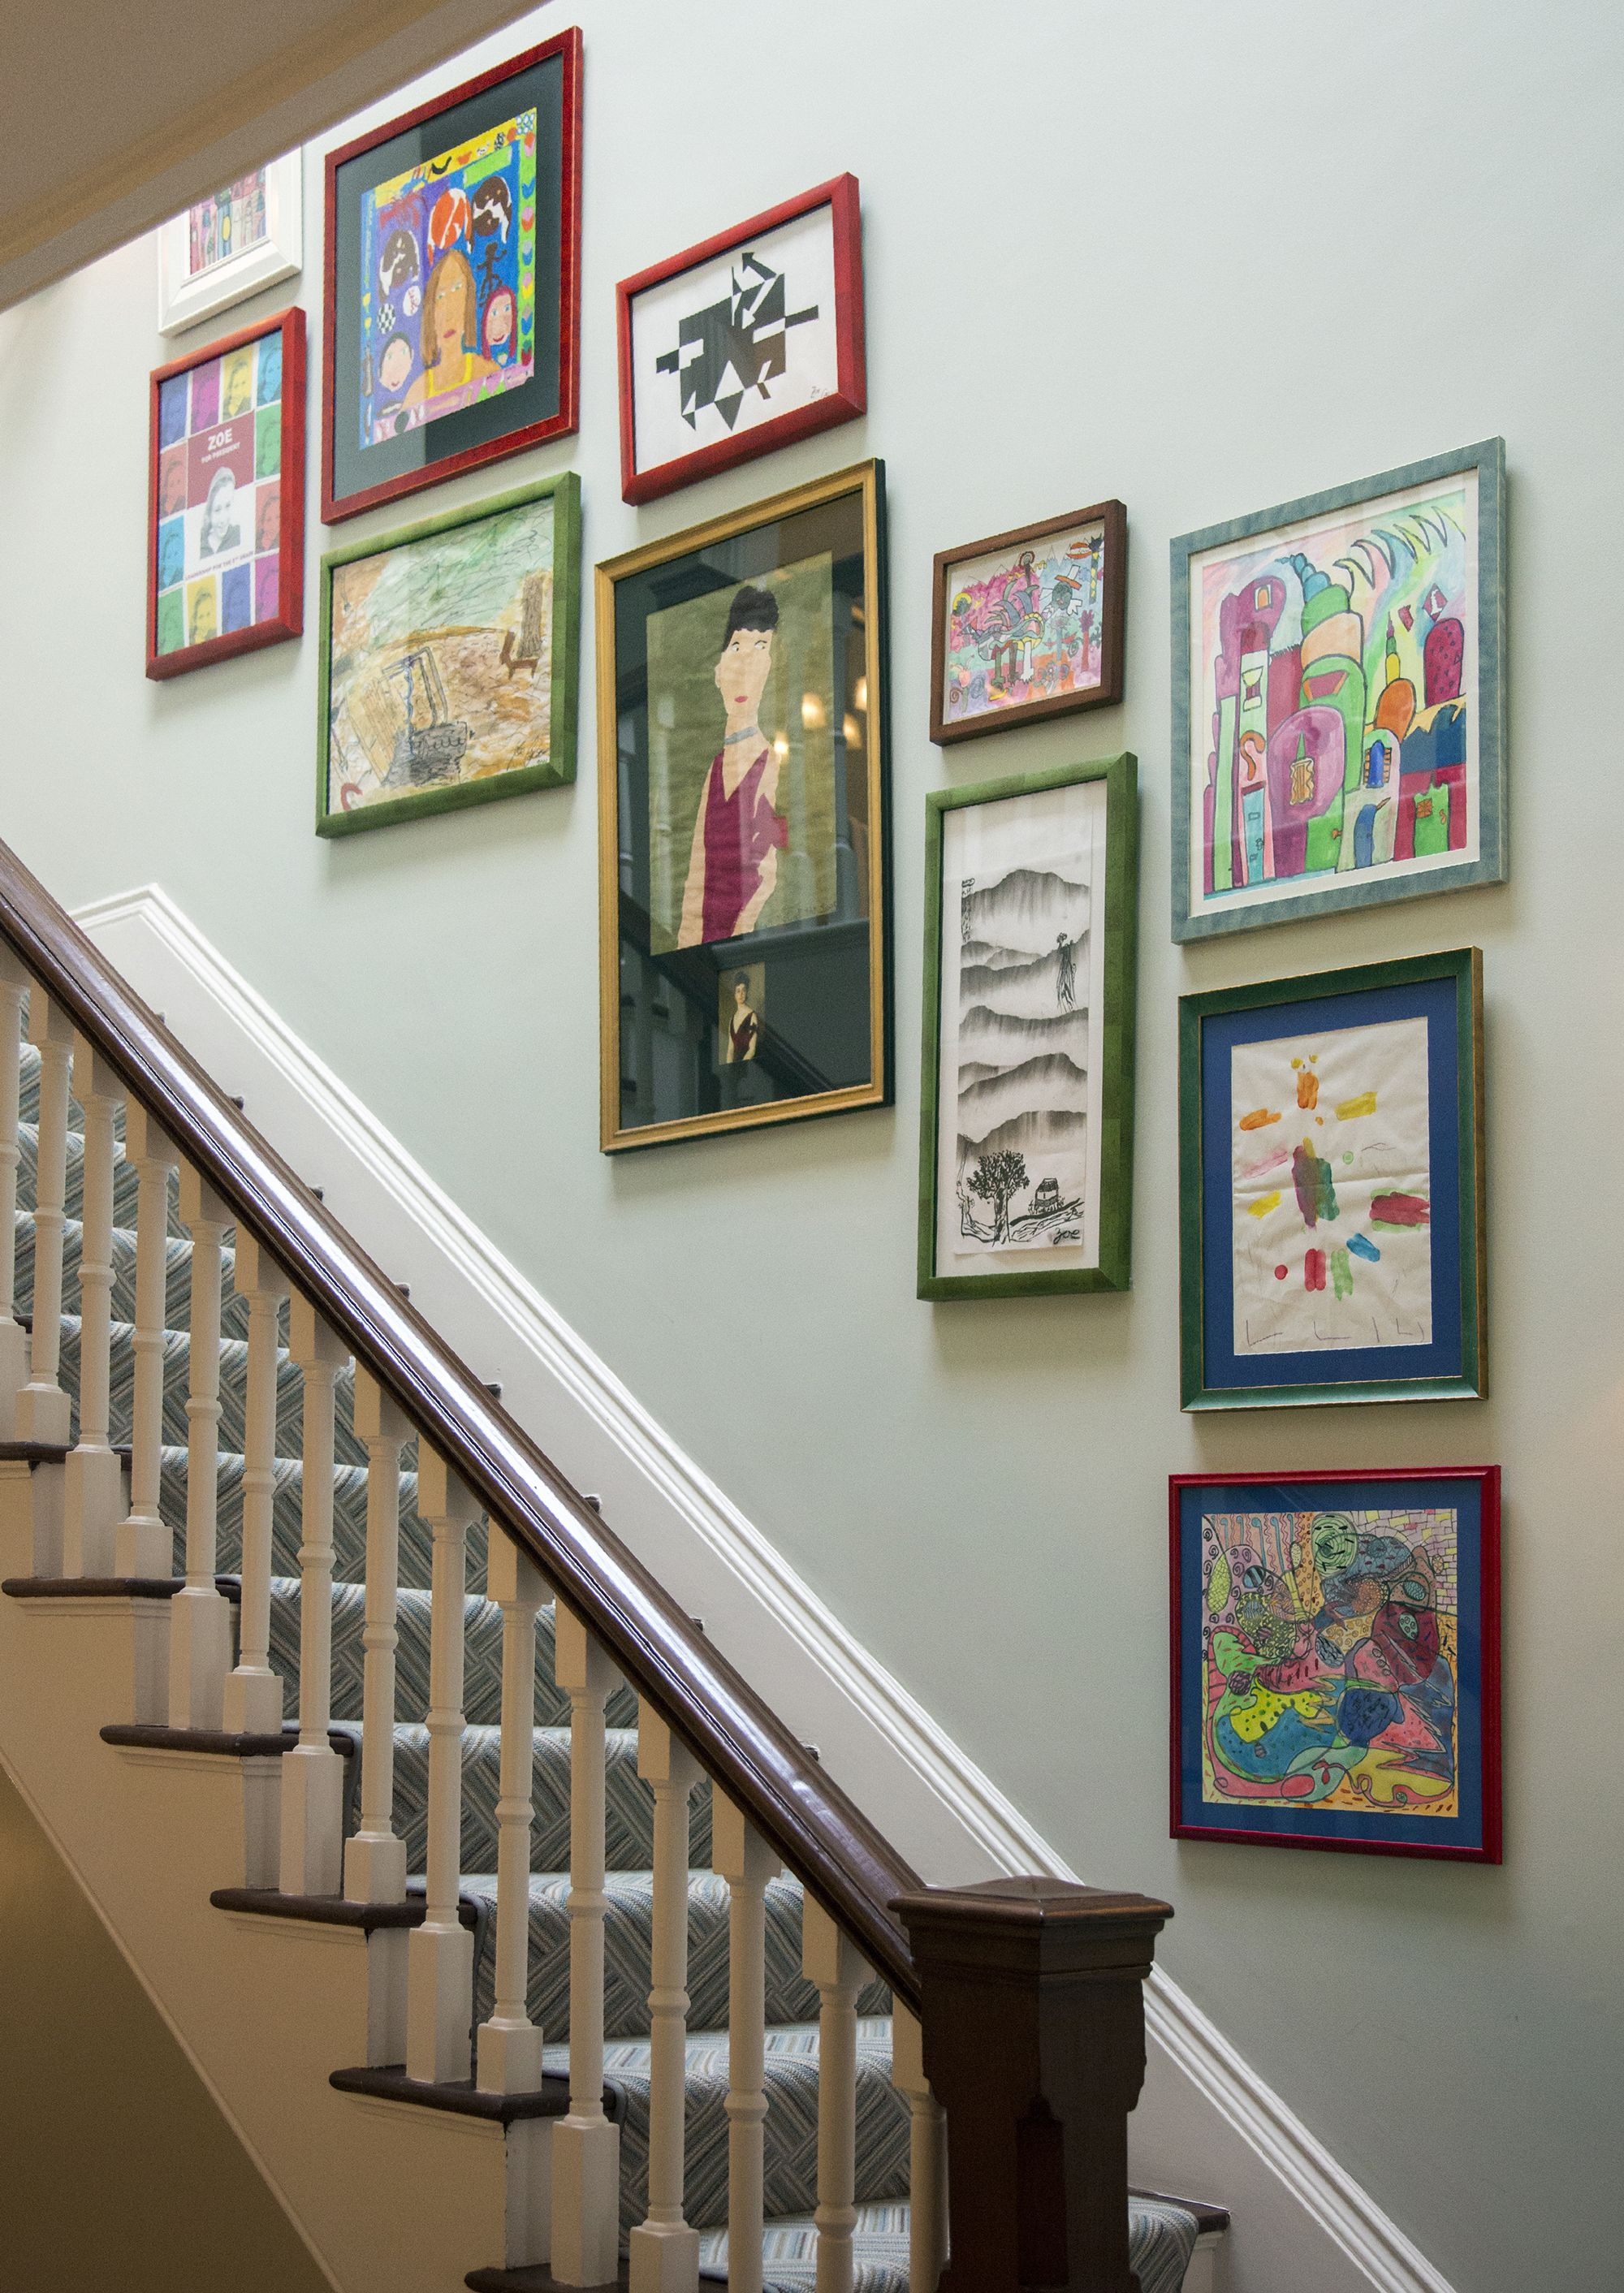 27 Stylish Staircase Decorating Ideas - How to Decorate Stairways